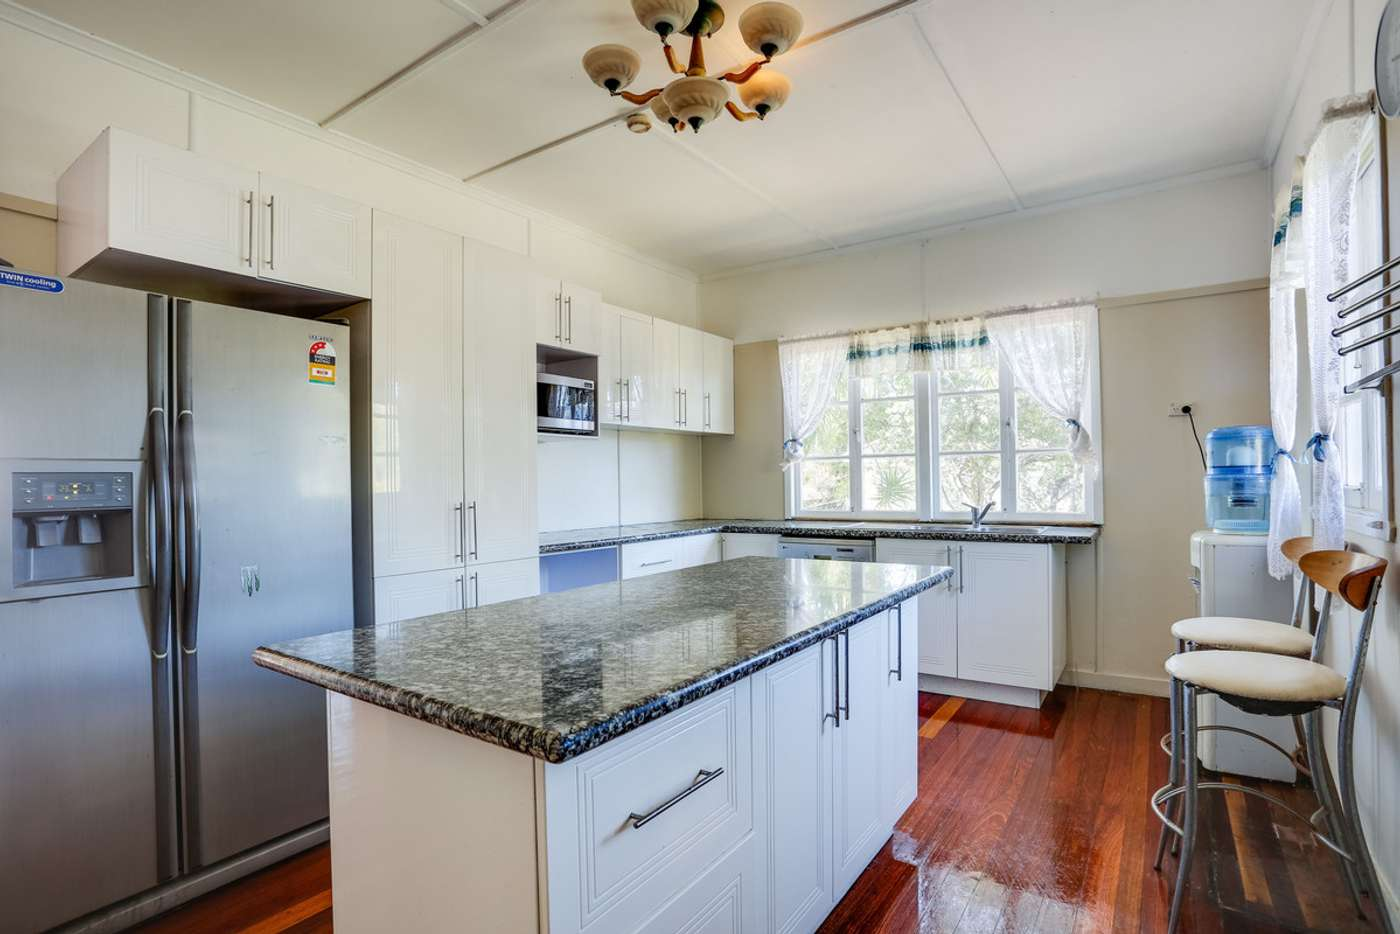 Fifth view of Homely house listing, 23 Layard Street, Holland Park QLD 4121